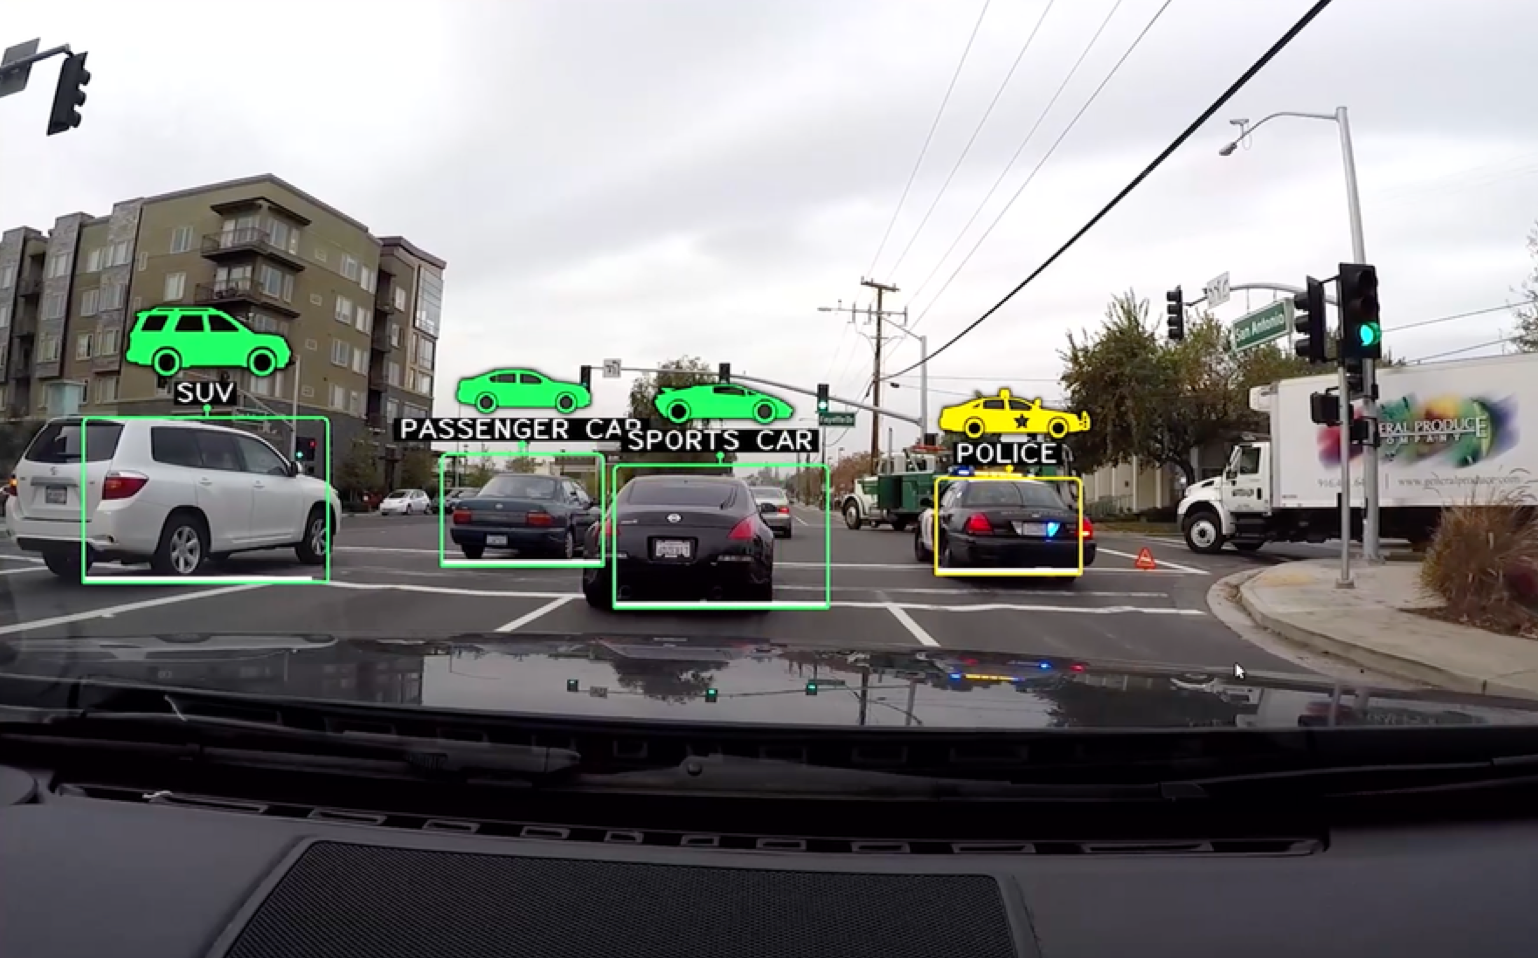 How Nvidia's Drive PX self-driving car system sees the world.